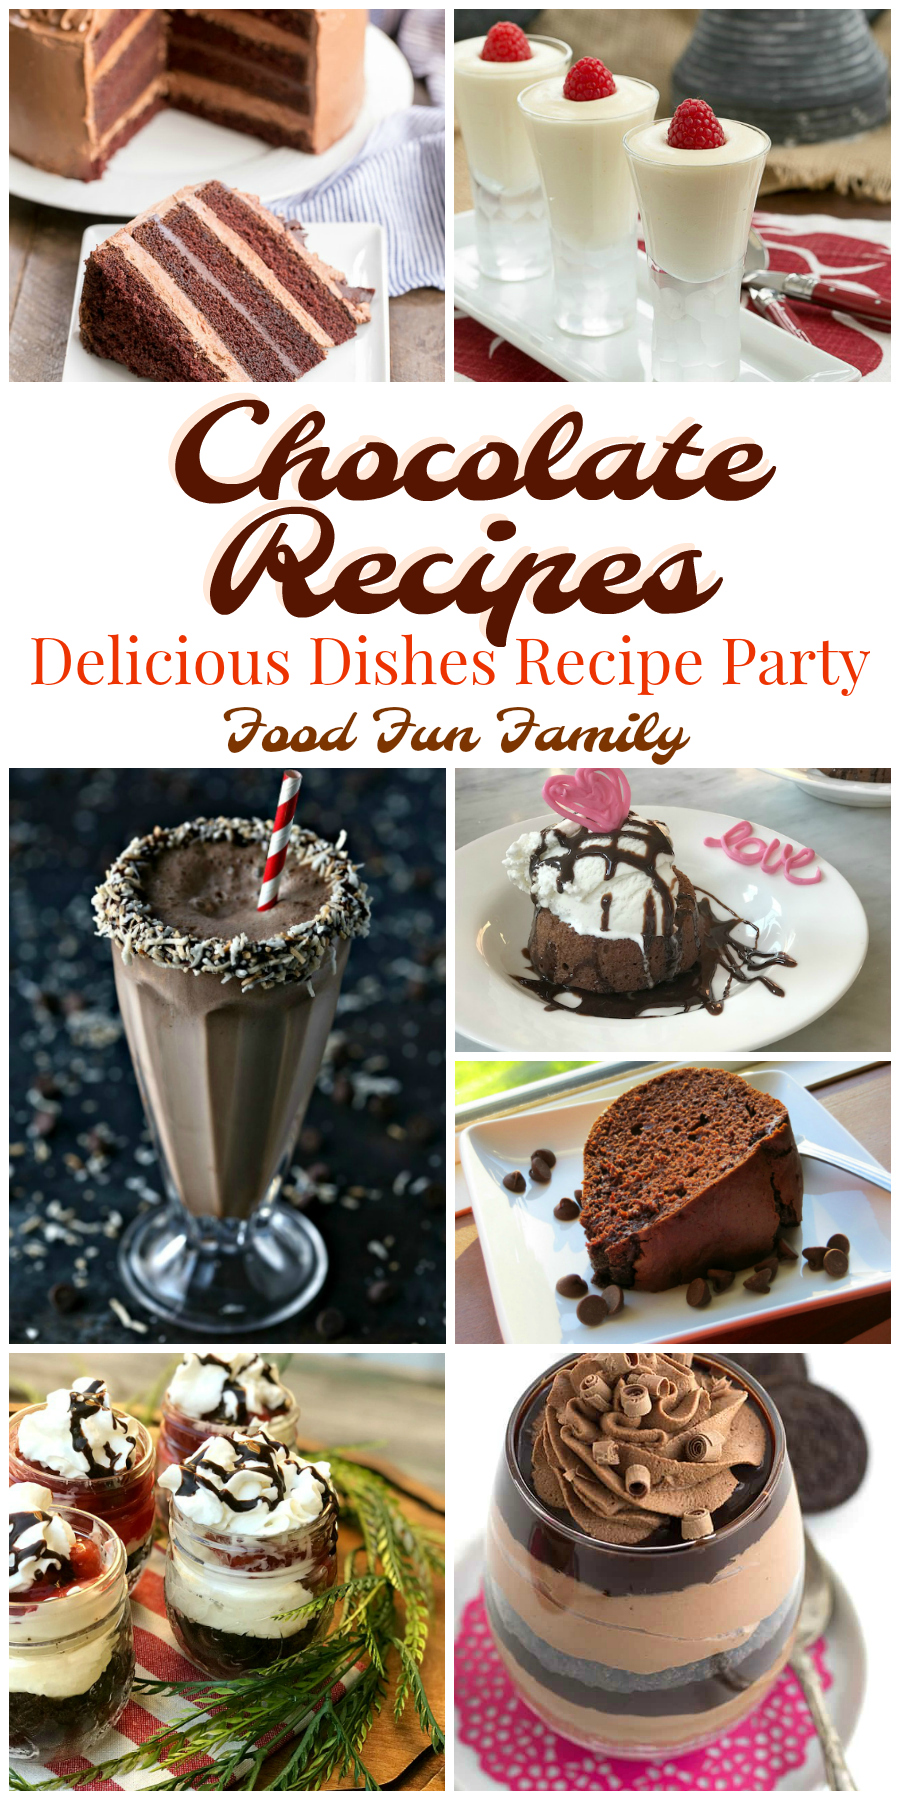 Chocolate Recipes - Delicious Dishes Recipe Party at Food Fun Family